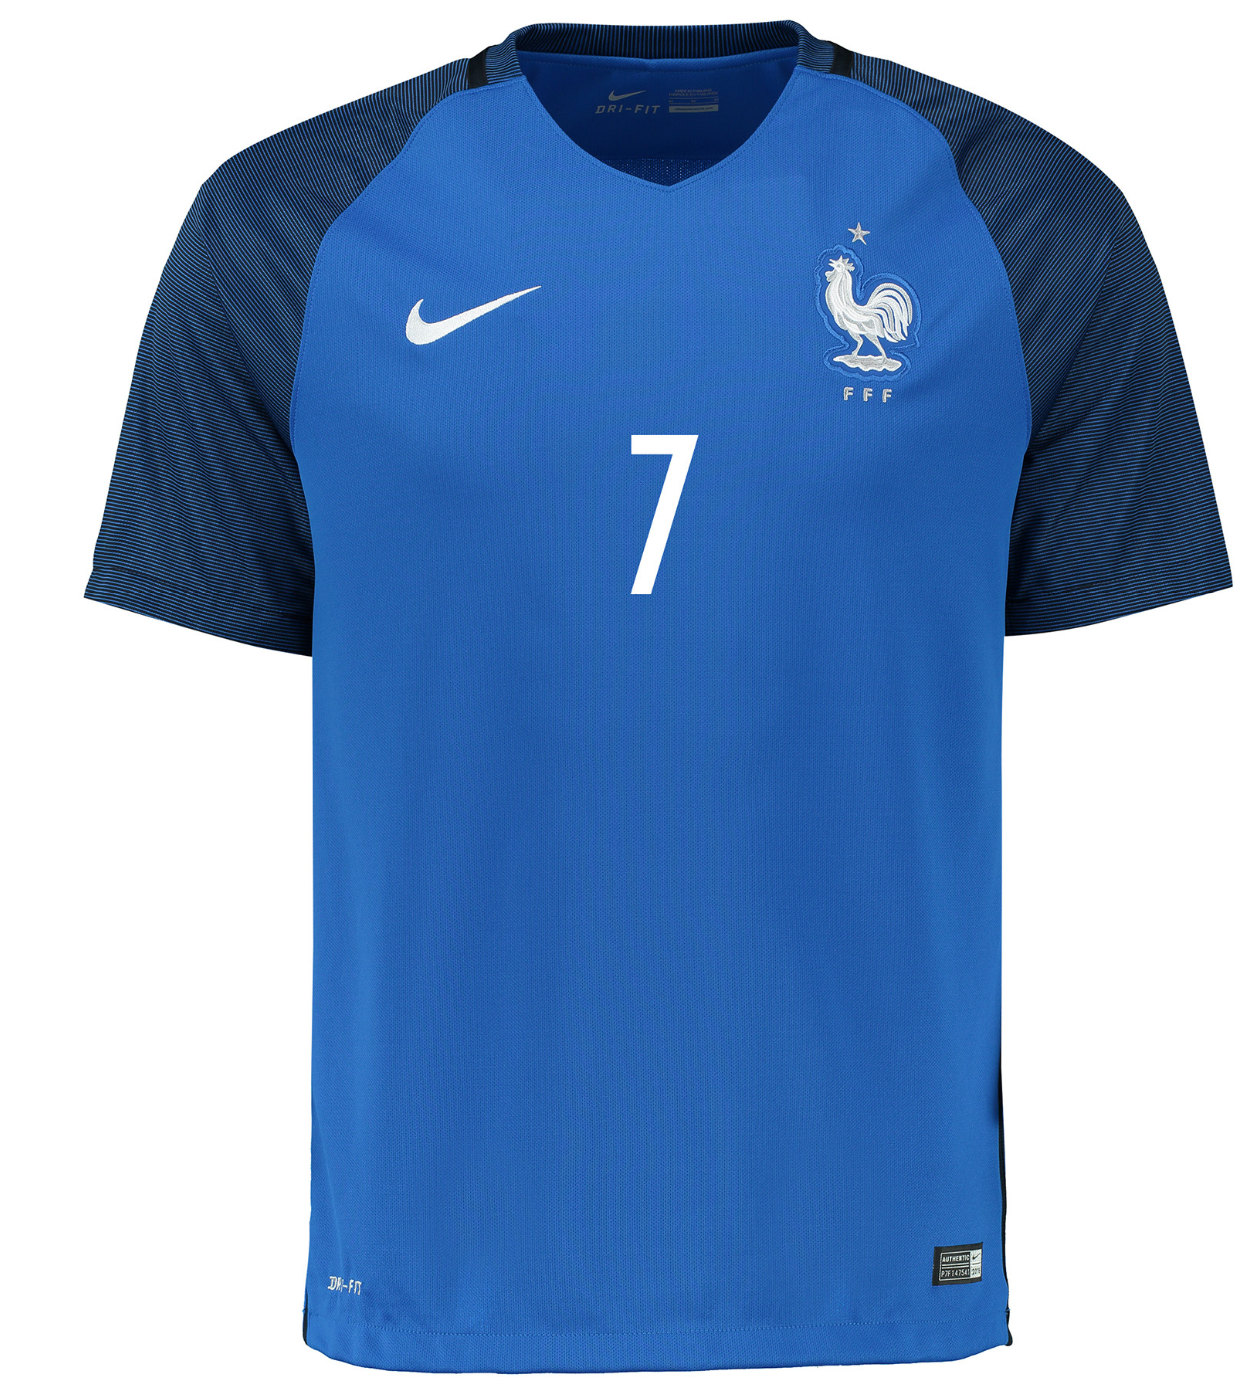 b28196391 Yükle (1256x1384)Fts 2016 France pictures free downloadFrance Home  7  GRIEZMANN Euro 2016 Men Soccer Jersey Football Shirt New Fan.